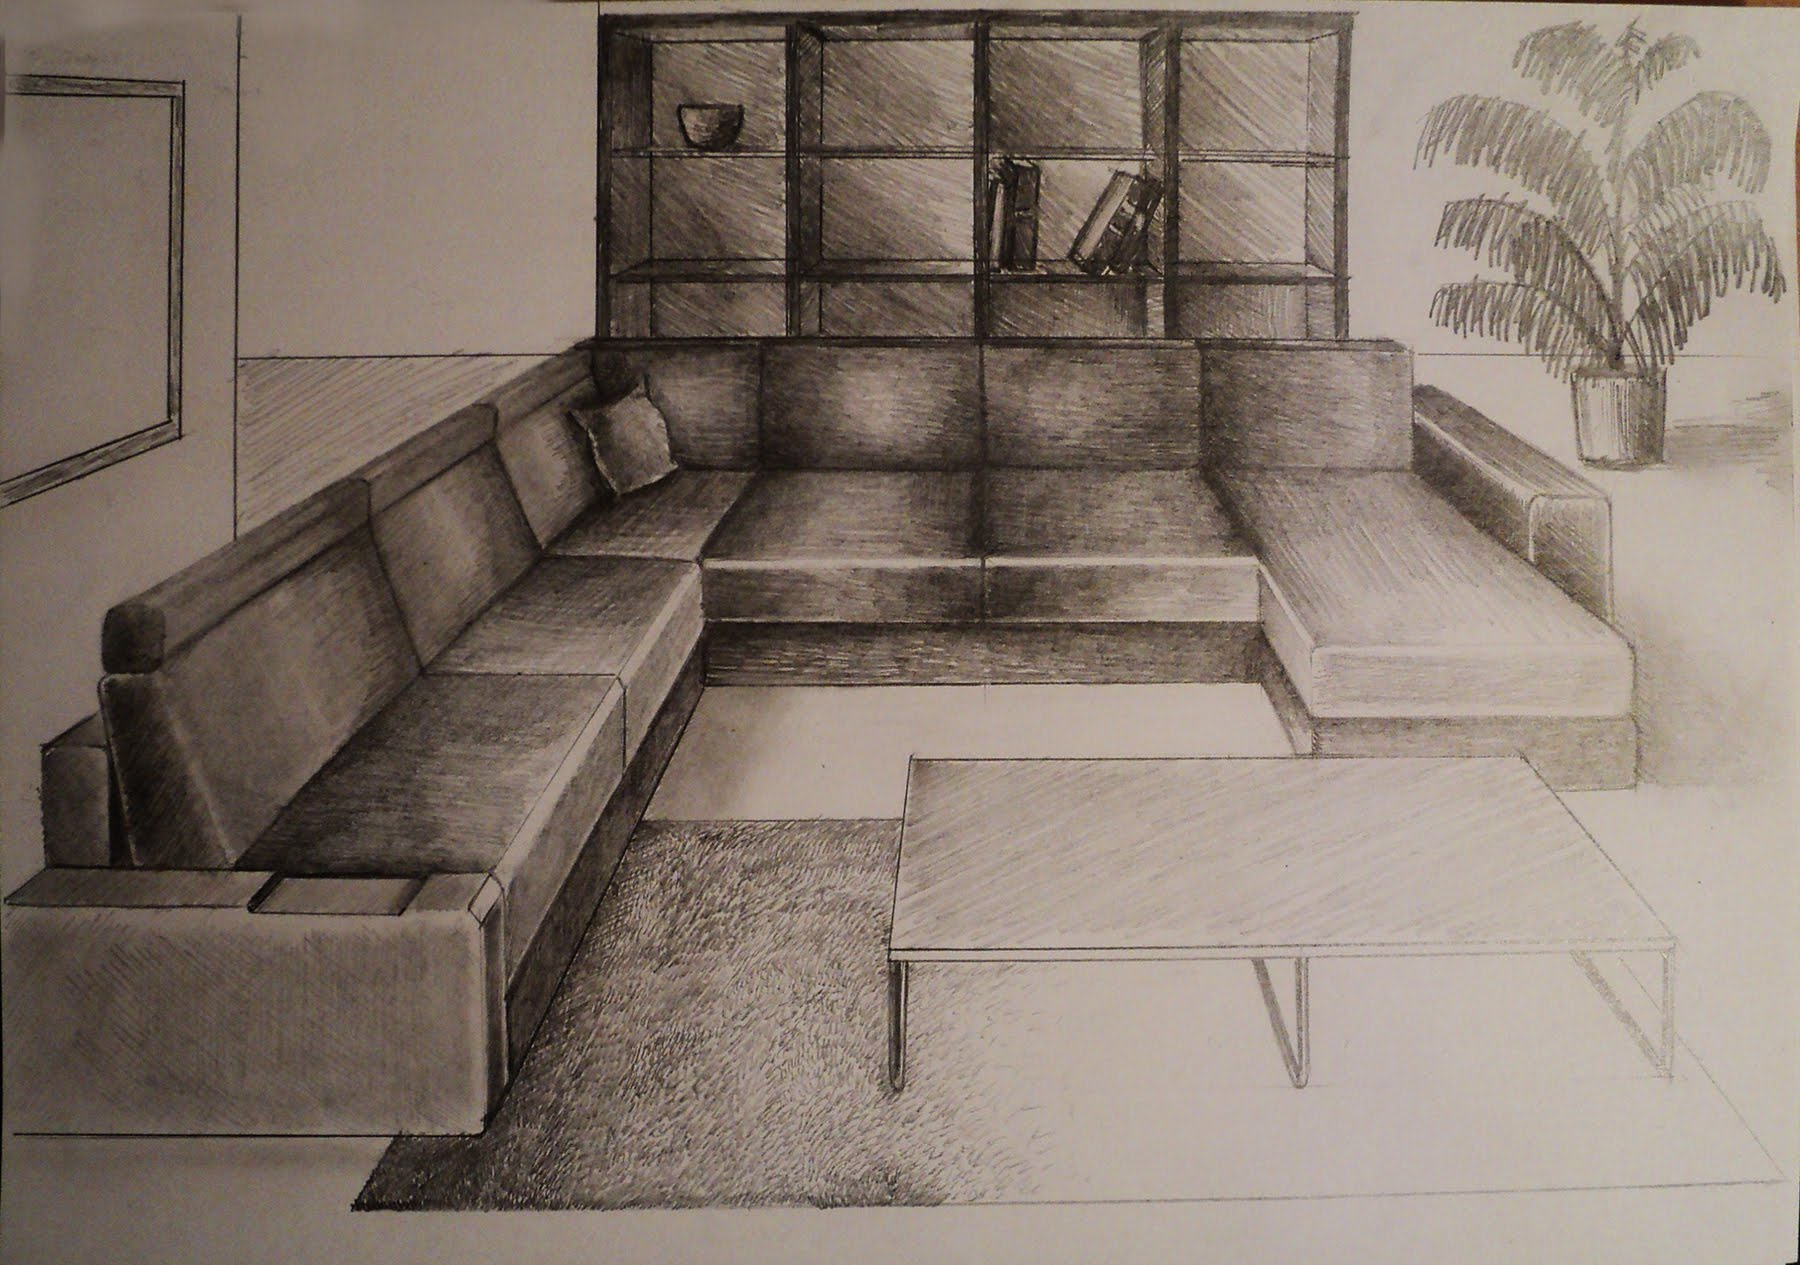 Drawn room pencil drawing To perspective point One to